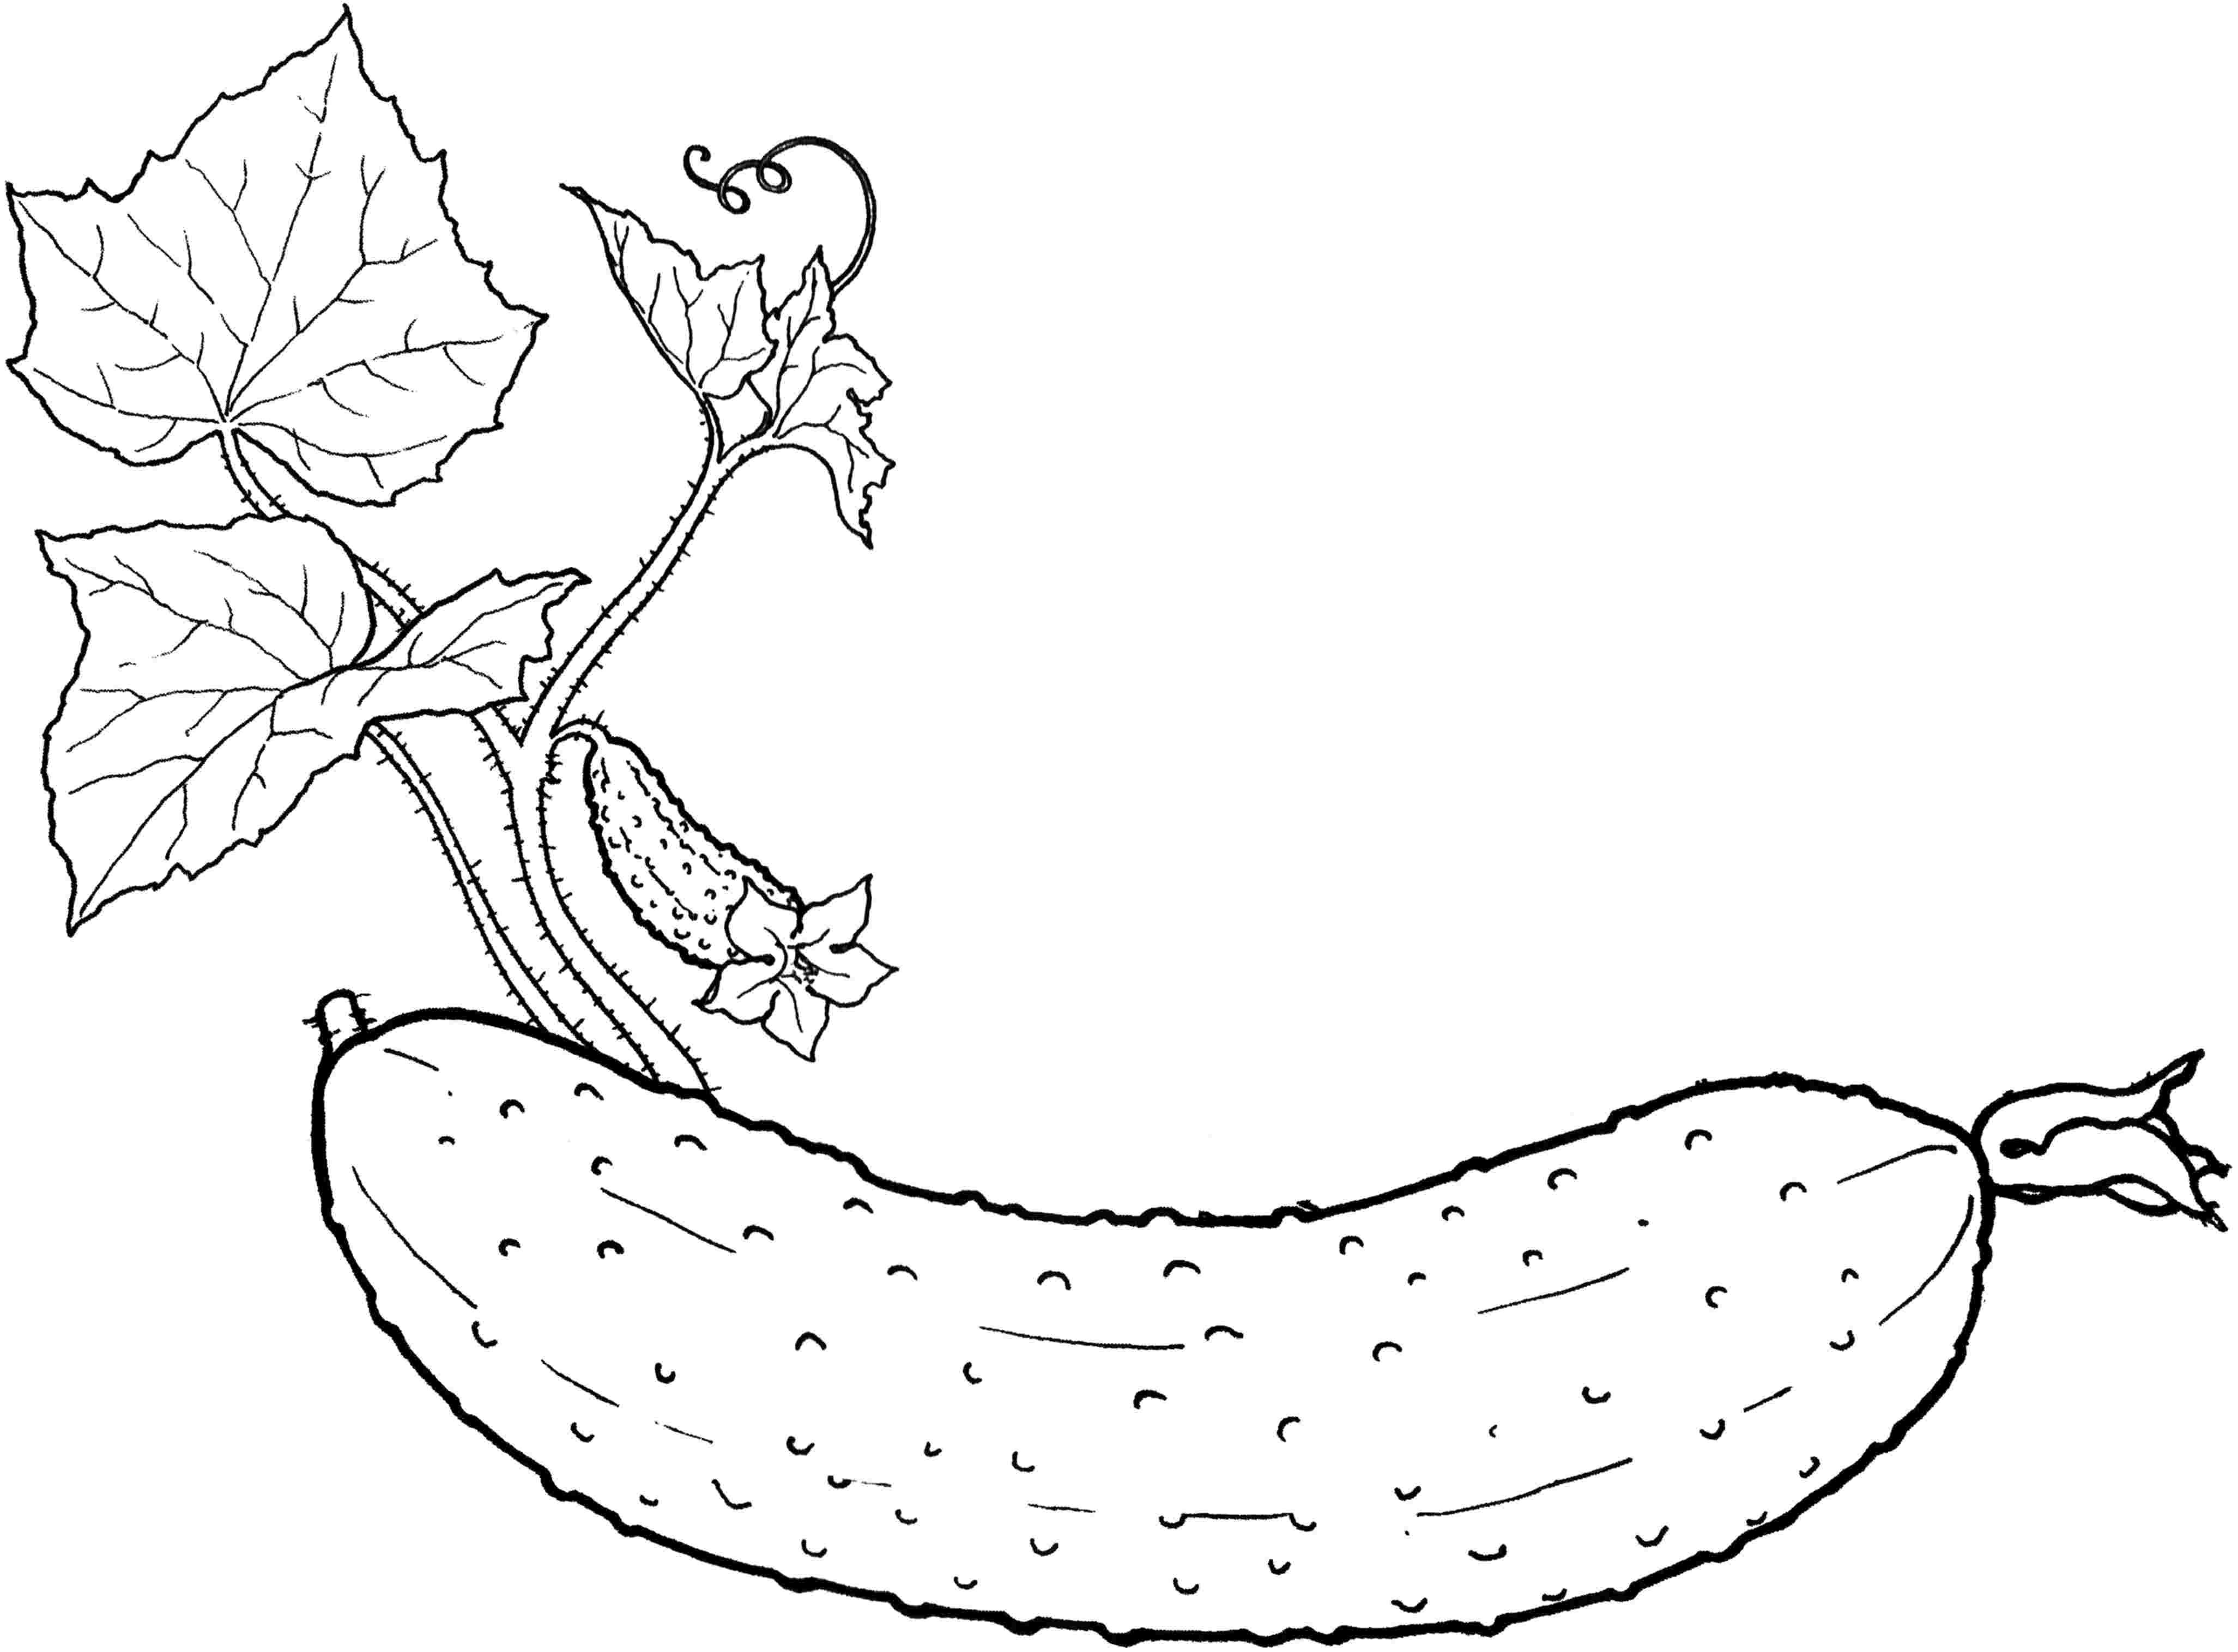 vegetable images for coloring vegetable coloring pages free download on clipartmag images for vegetable coloring